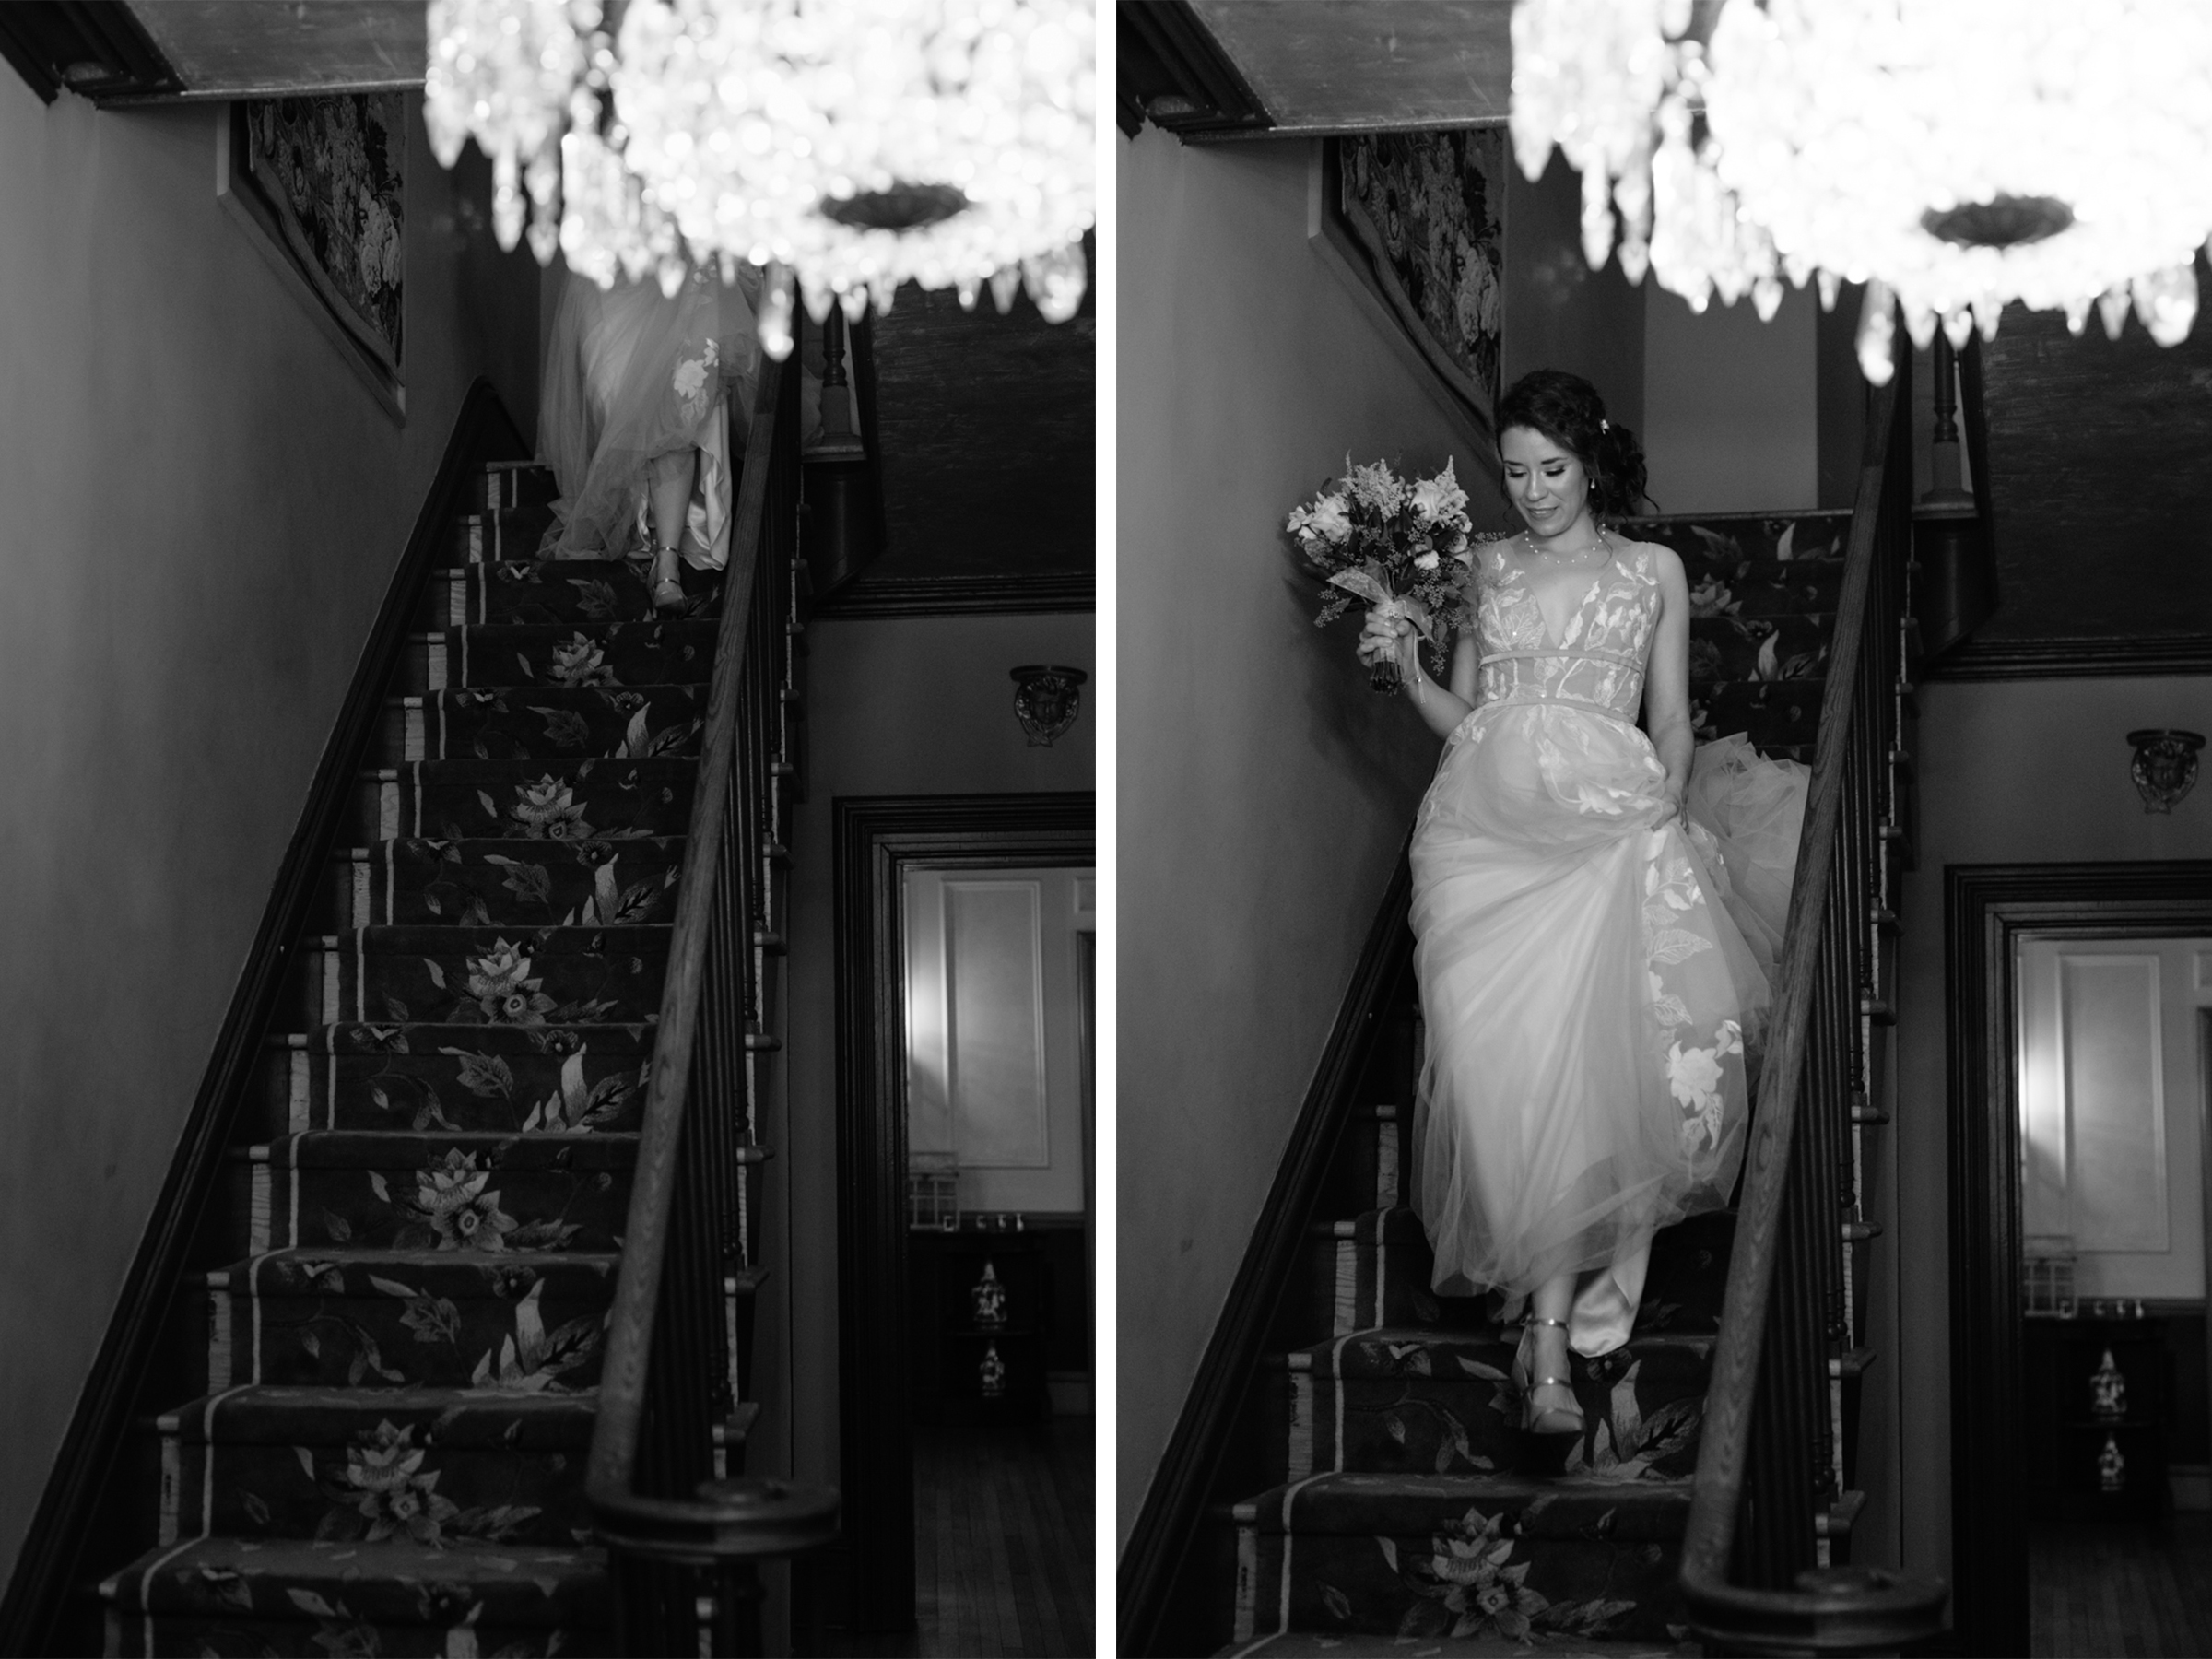 Feast at Round Hill Wedding-Kenny + Melissa-Bride Descending Staircase-Hudson Valley New York - Olivia Christina Photo-1.jpg